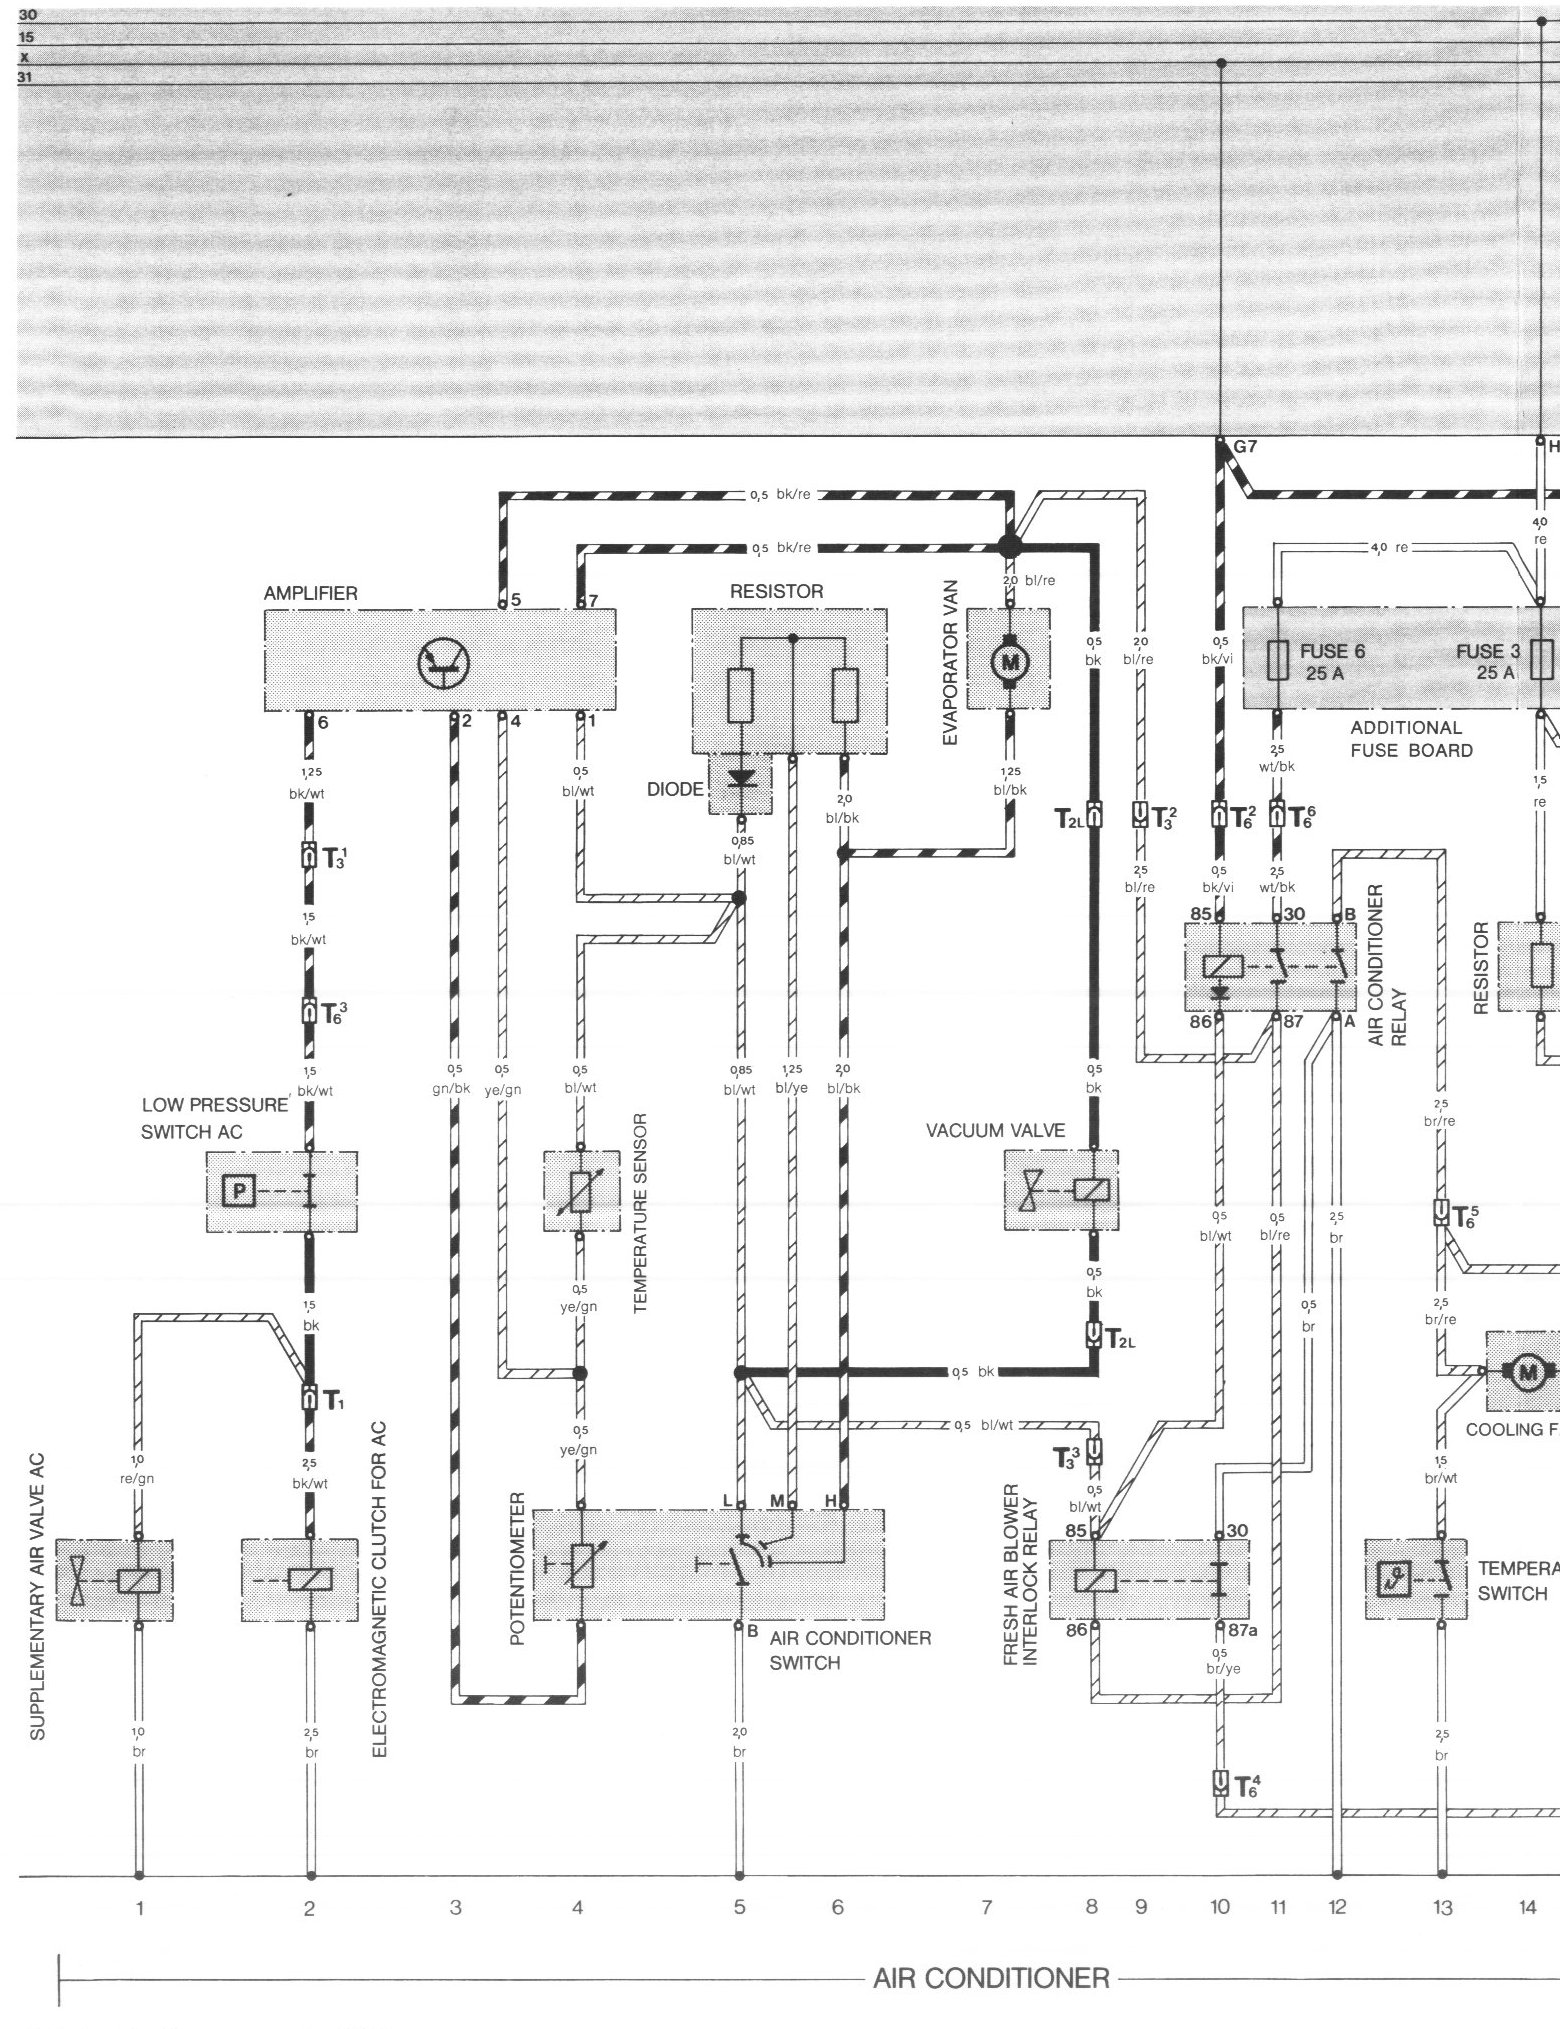 944_84_AC_1 porsche 944 wiring diagram pdf 1989 porshce 930 engine wiring 1986 porsche 944 fuse box diagram at crackthecode.co